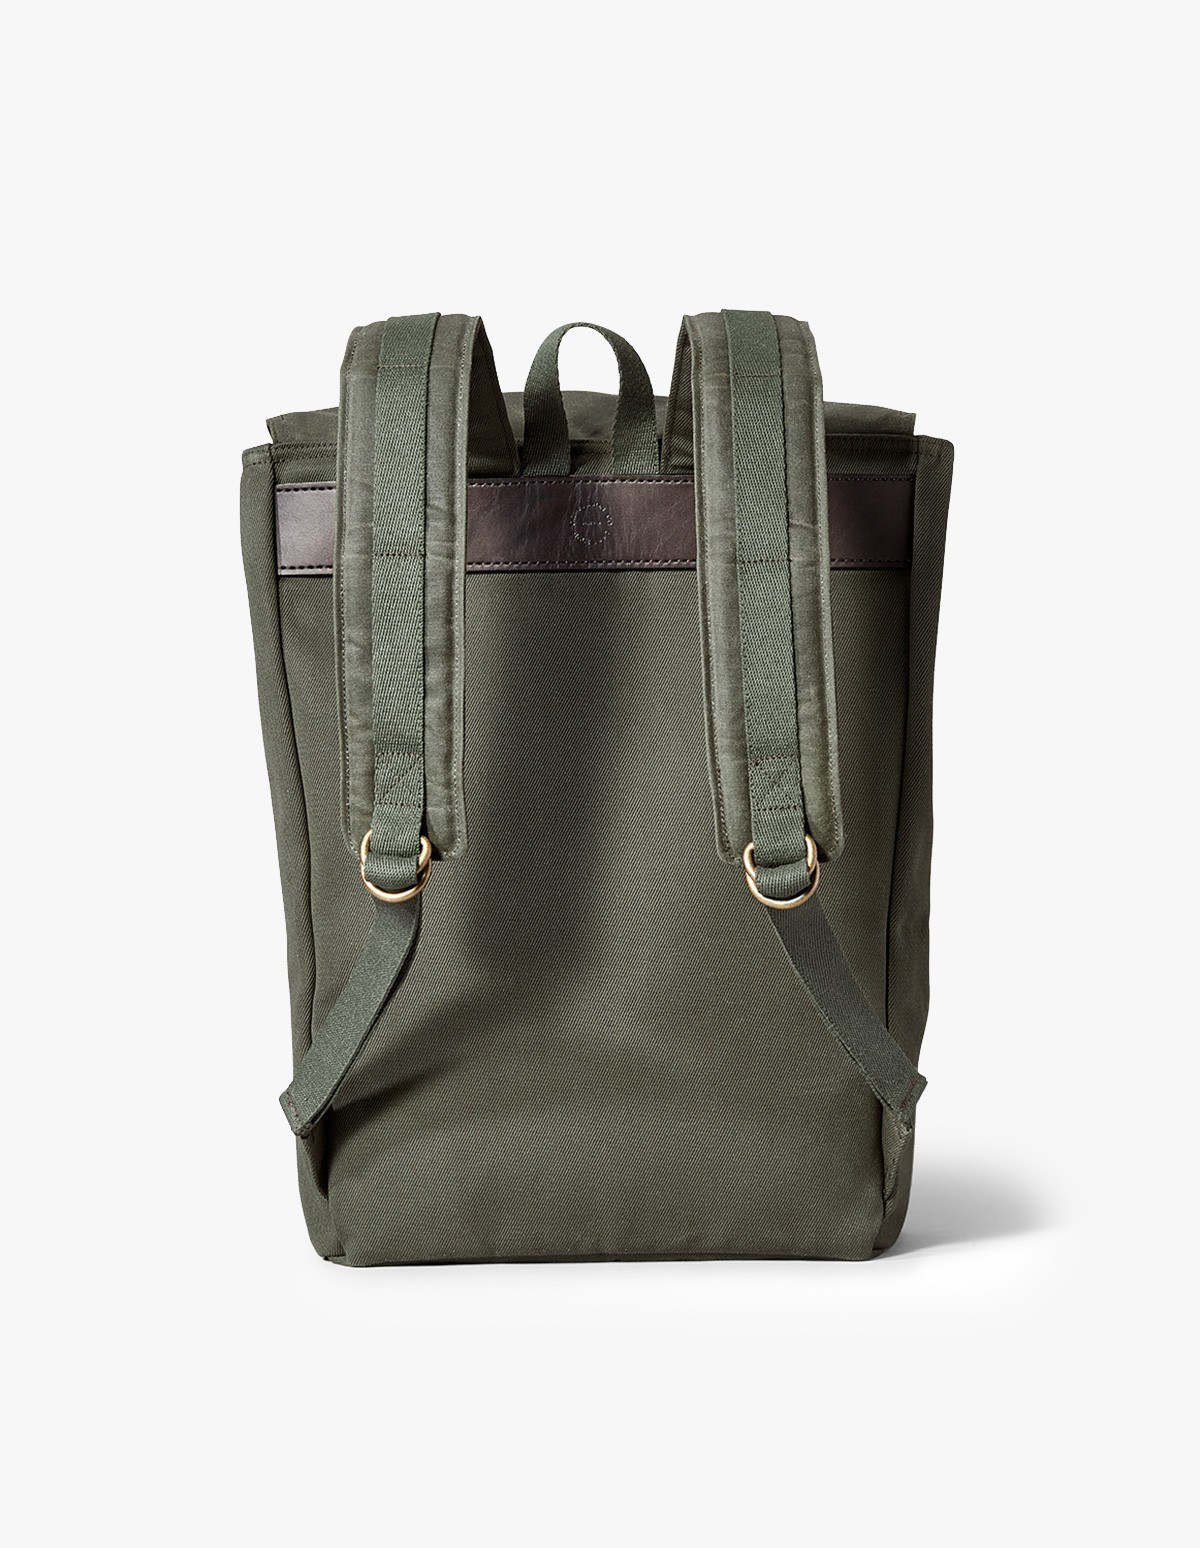 Filson Ranger Backpack in Otter Green